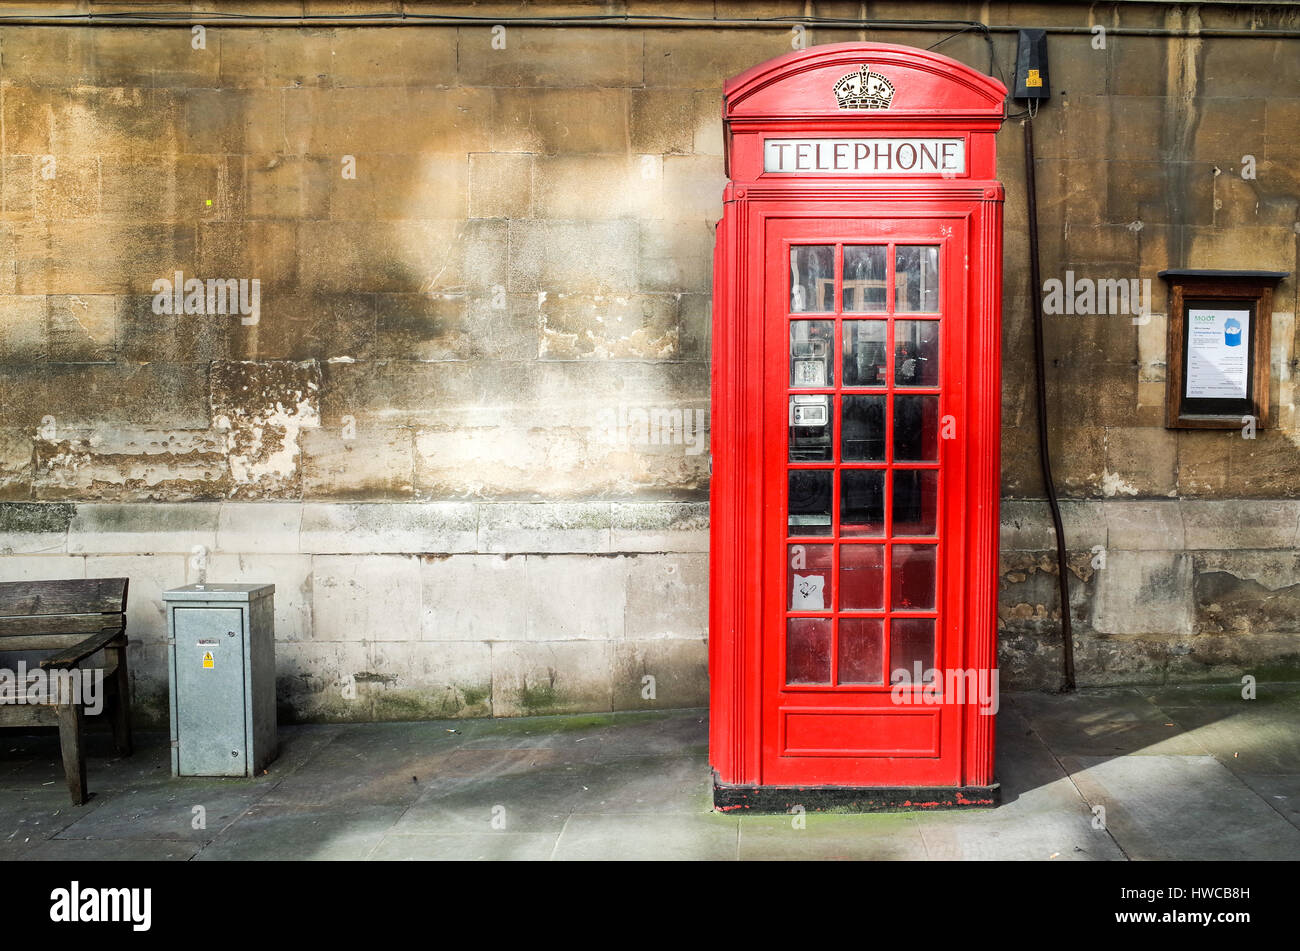 A classic red phone kiosk in London's financial district - Stock Image